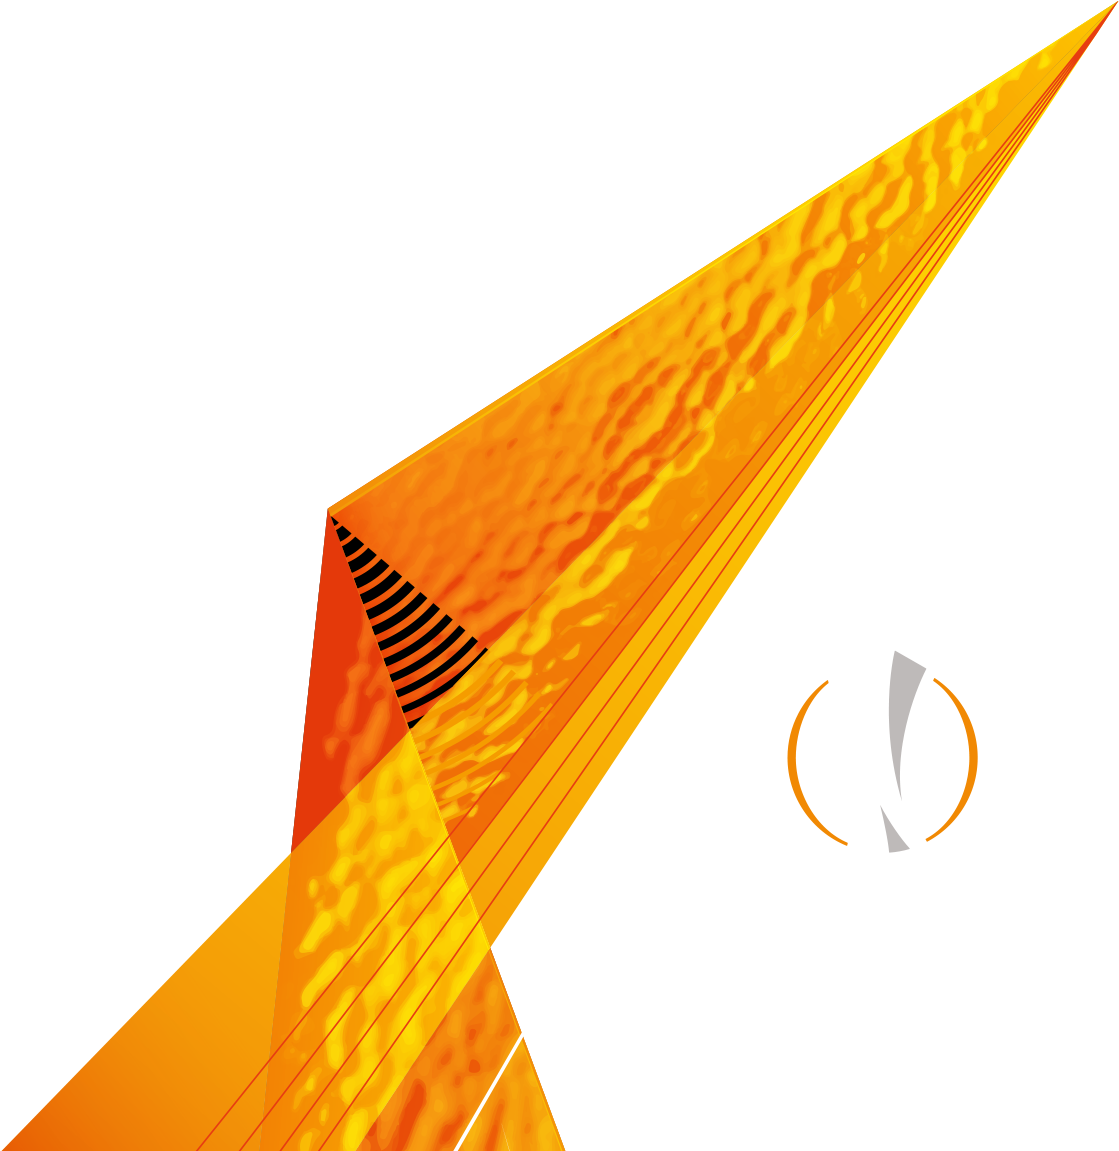 hankook logo png deadline for entries matchday uefa europa league energy wave 3417601 vippng uefa europa league energy wave